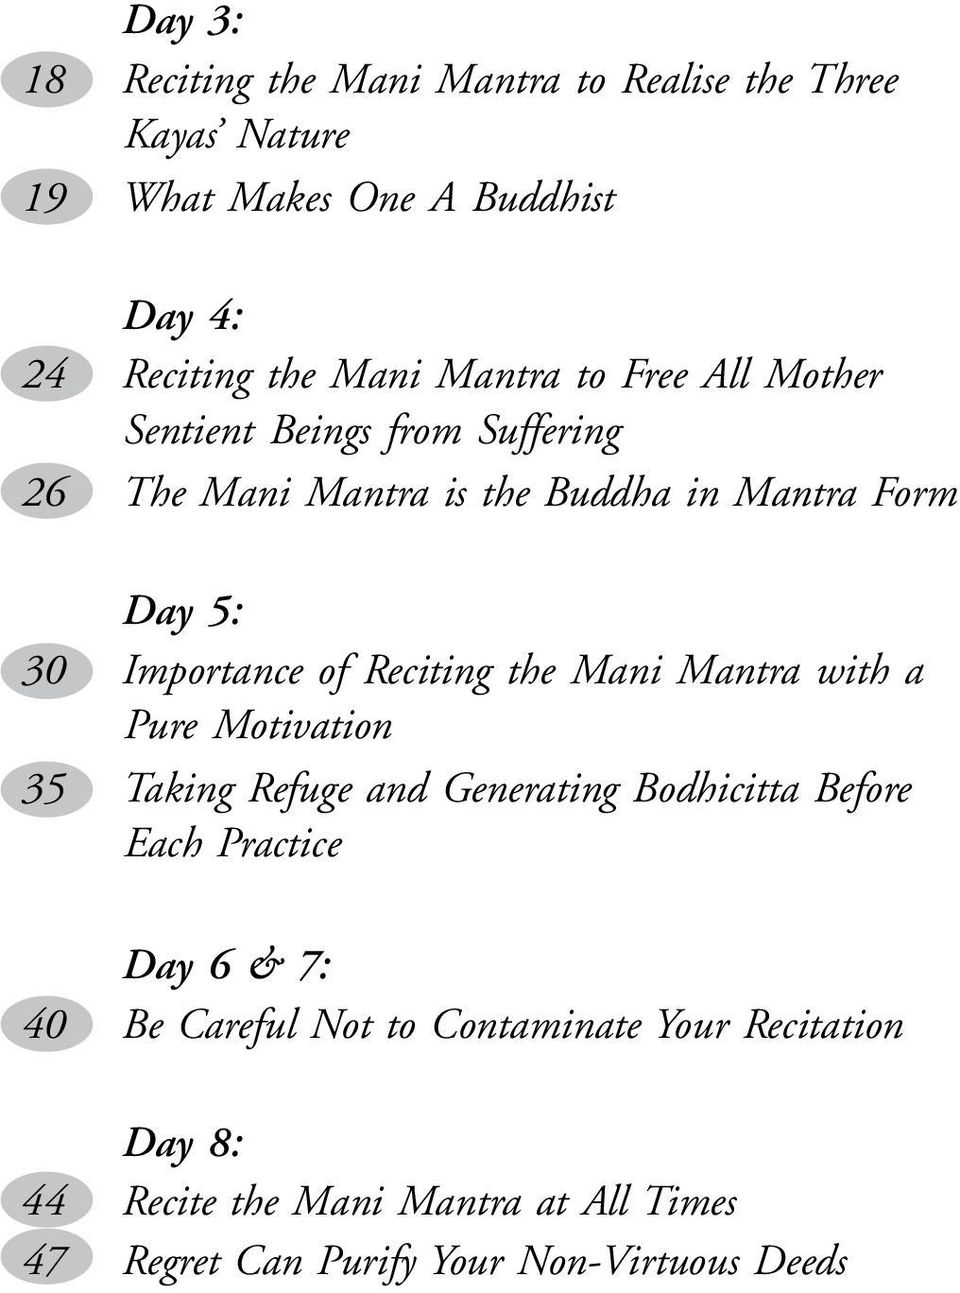 Reciting the Mani Mantra with a Pure Motivation 35 Taking Refuge and Generating Bodhicitta Before Each Practice Day 6 & 7: 40 Be